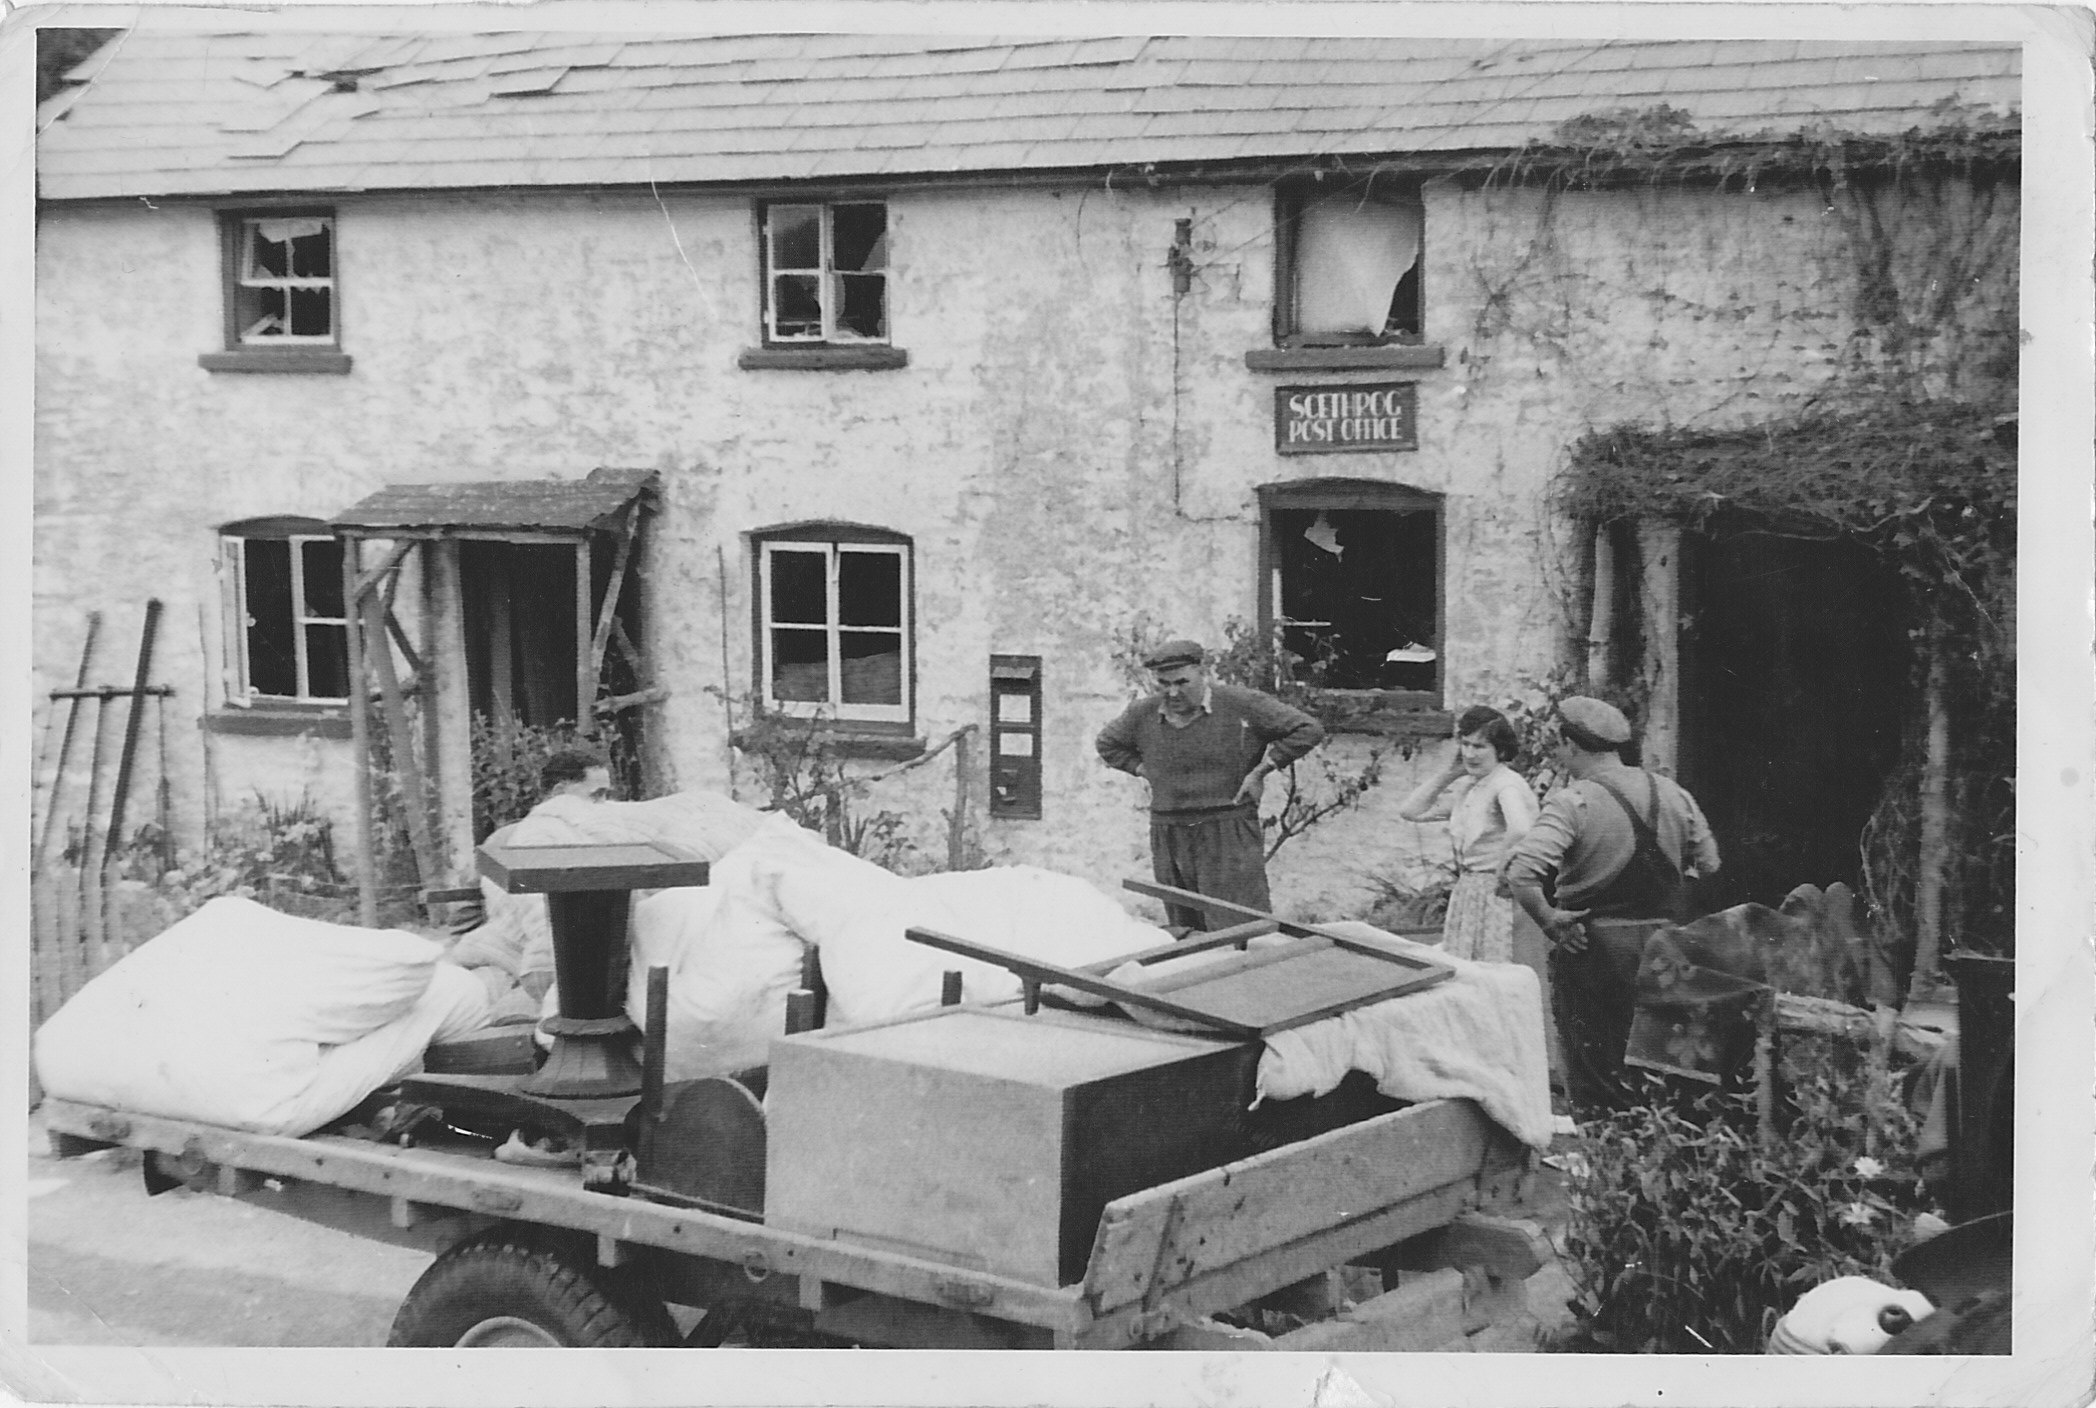 A40 Explosion damage to Scethrog post office